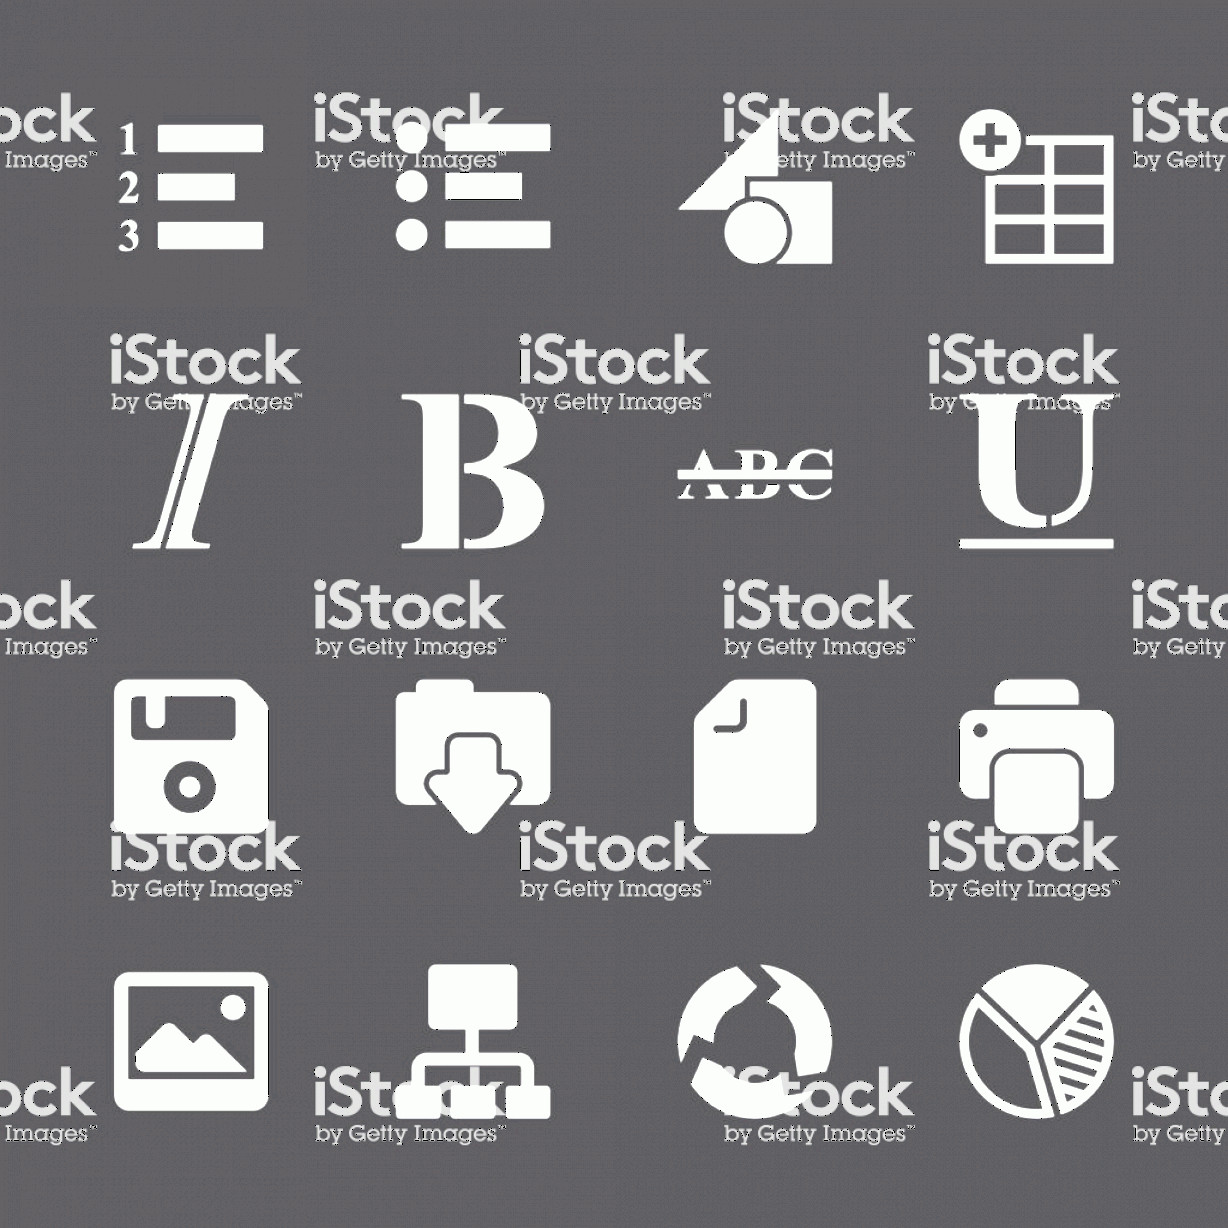 Editors Symbols In Vector: Document Editor Tool Icons White Series Eps Gm